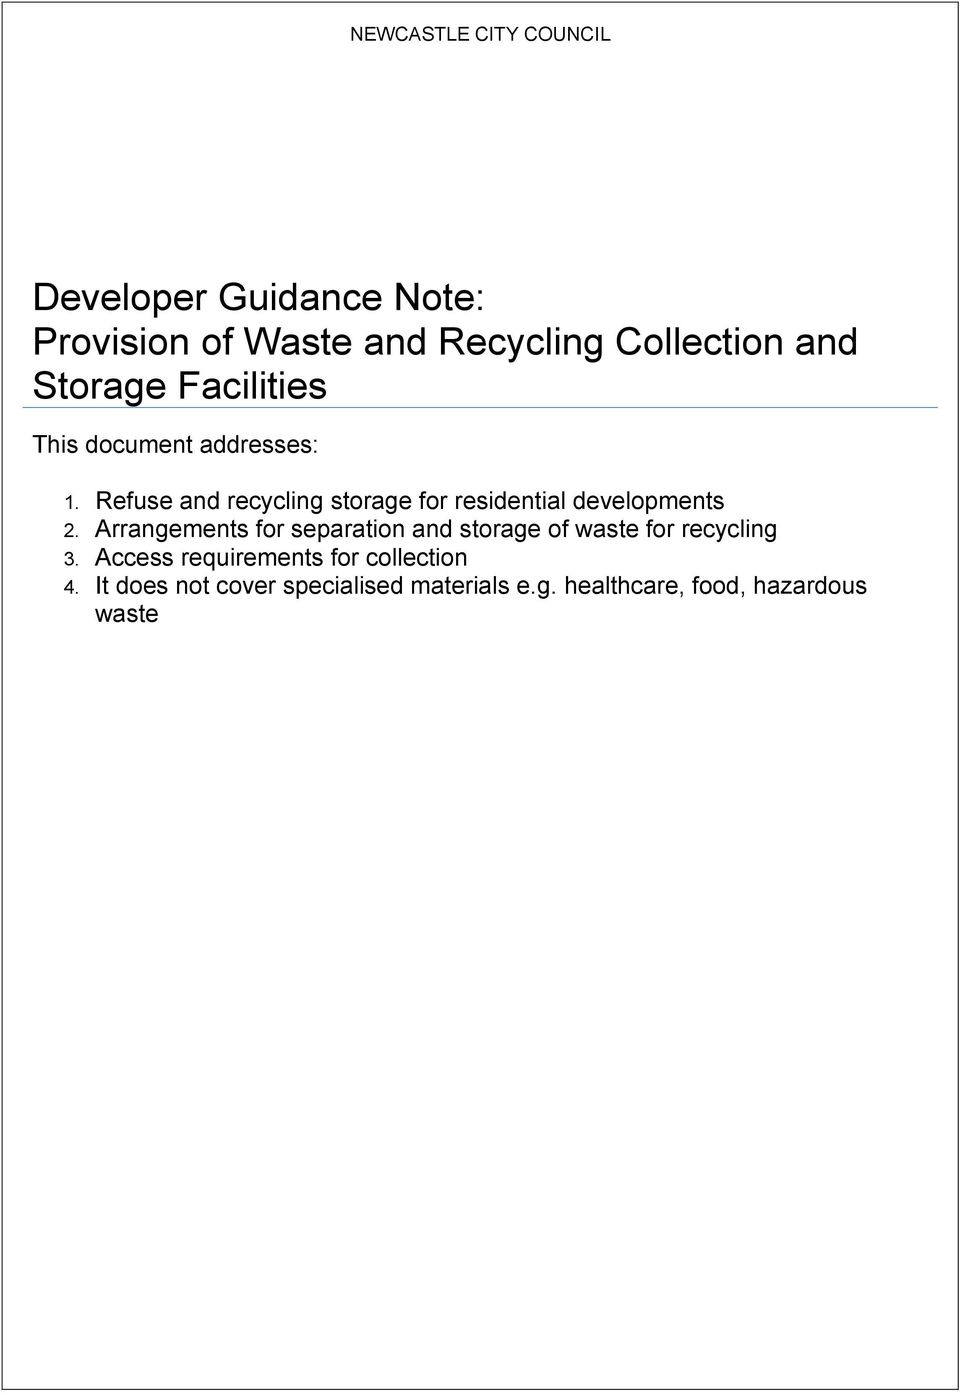 Refuse and recycling storage for residential developments 2.